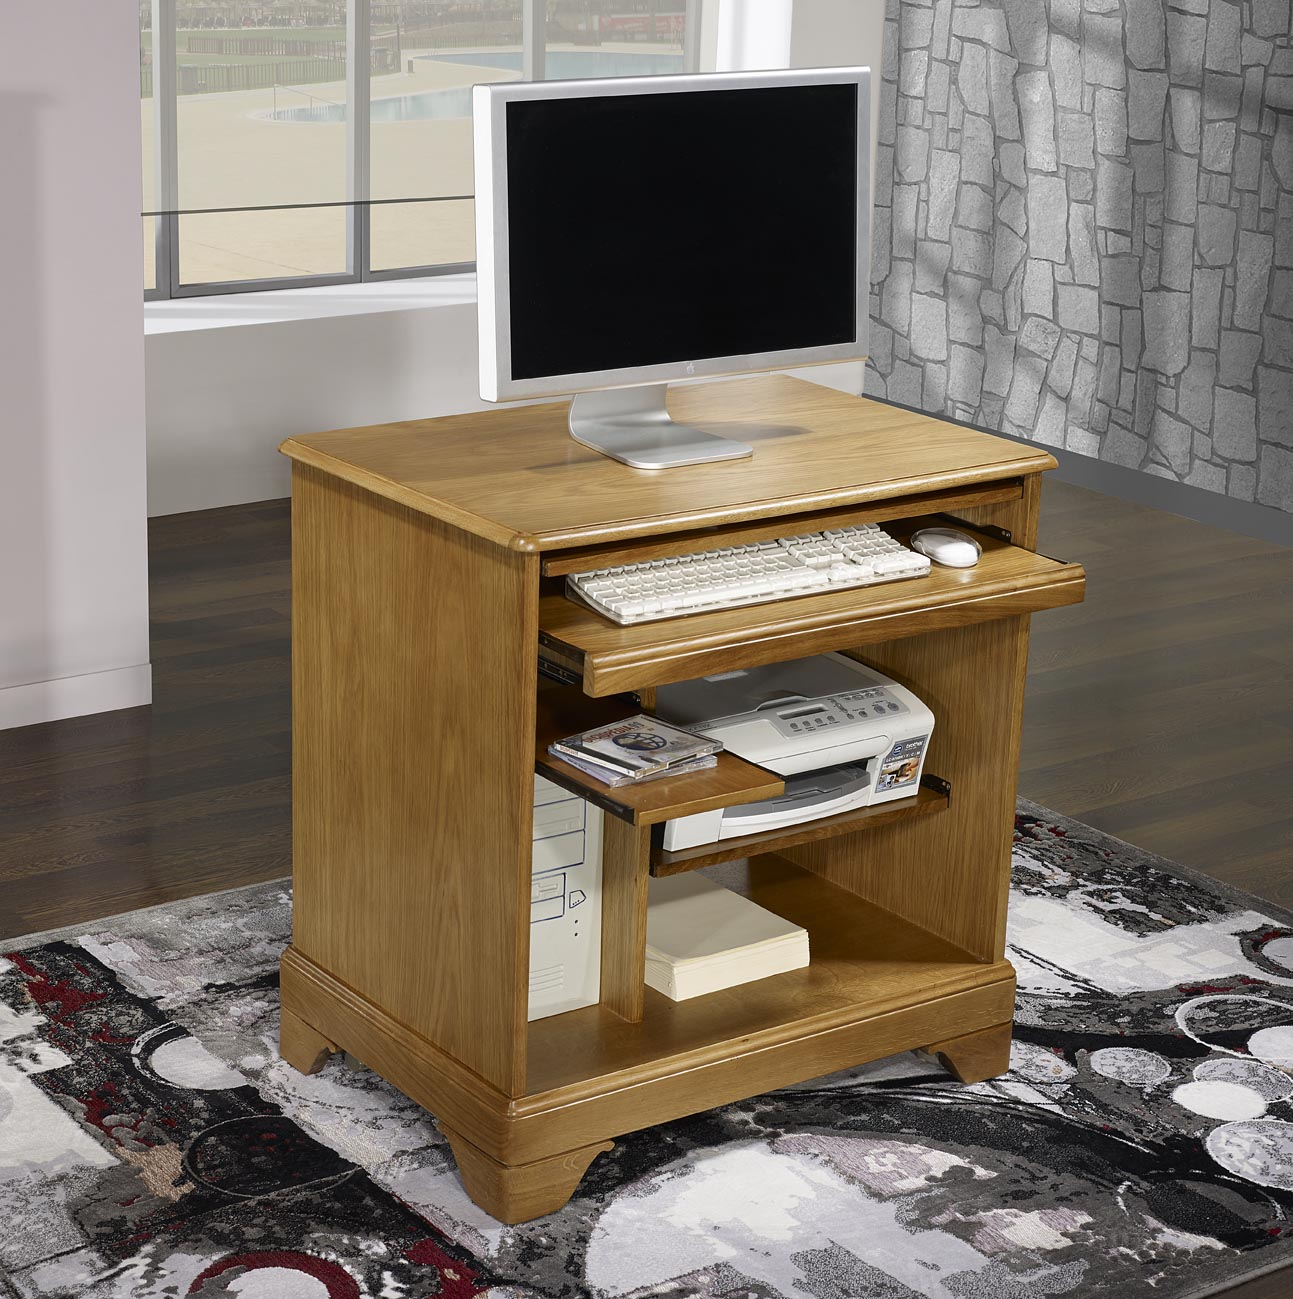 Customiser un bureau en bois for Meuble informatique bois